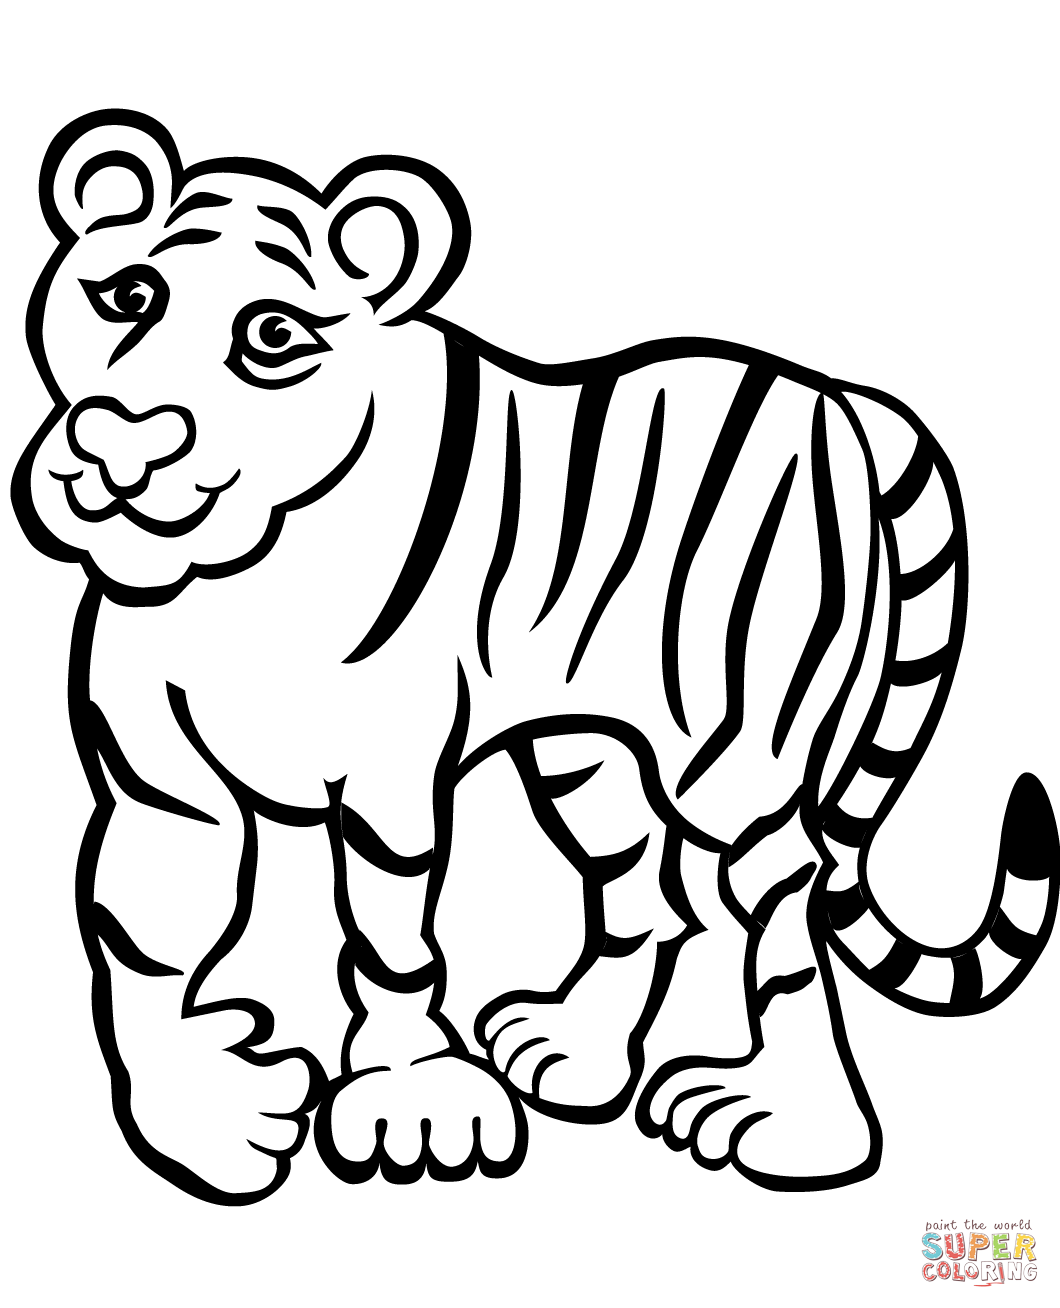 Tiiger coloring #13, Download drawings